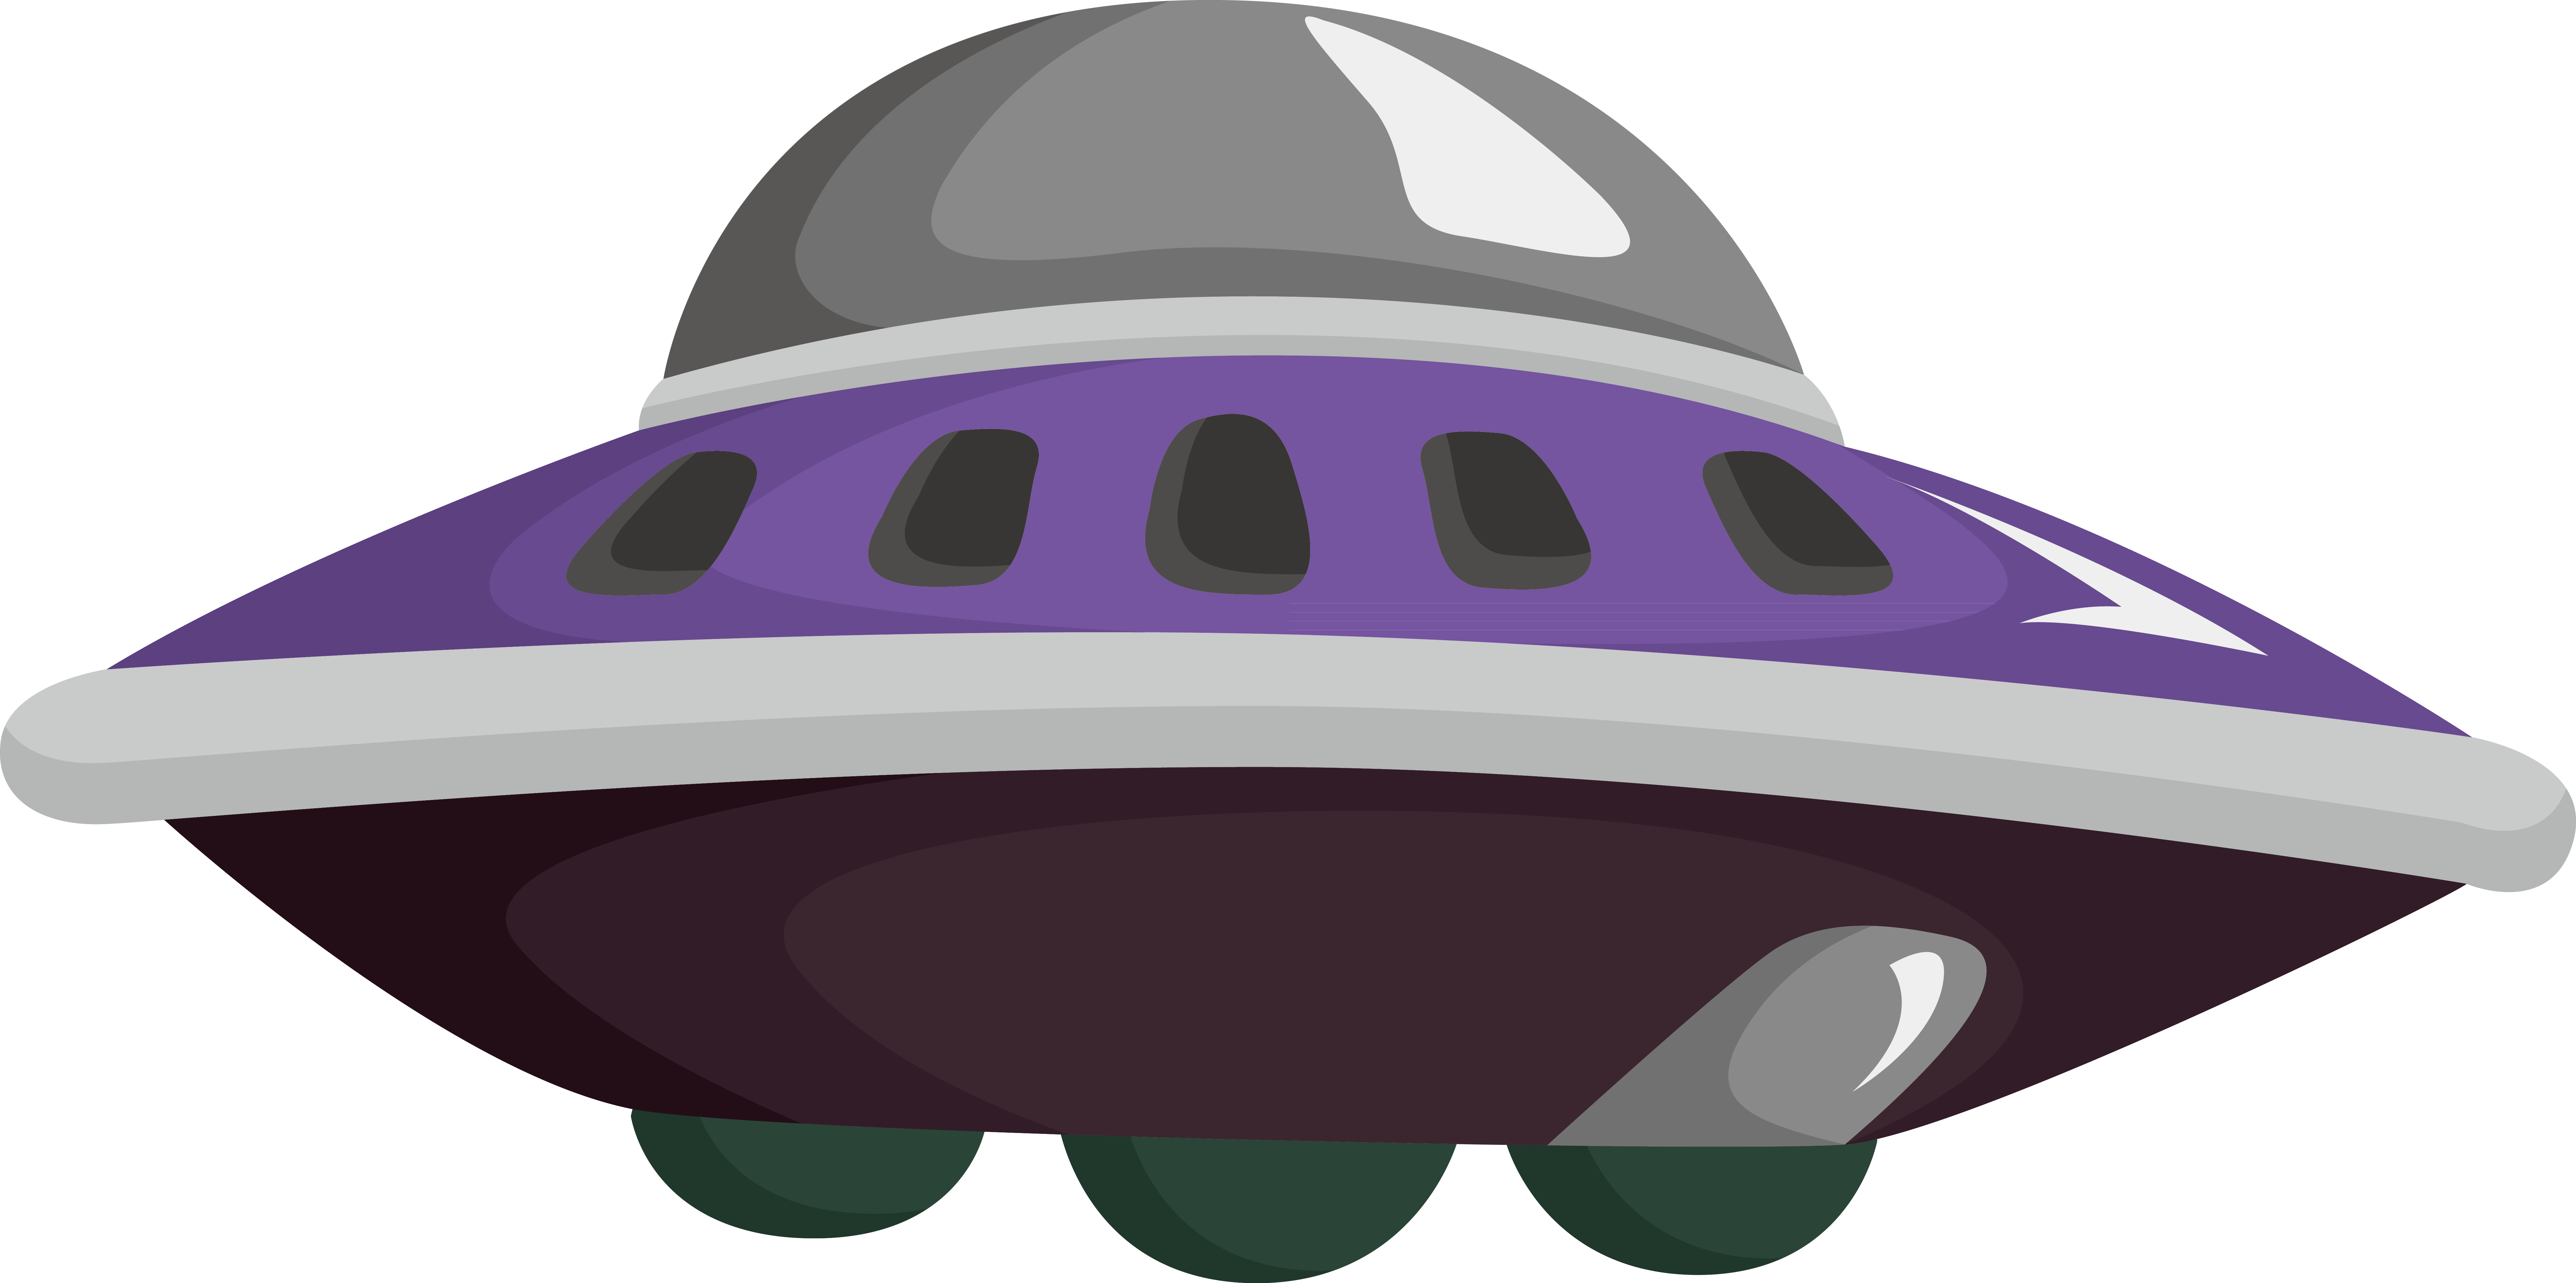 Personal clip objects. Unidentified flying object spacecraft